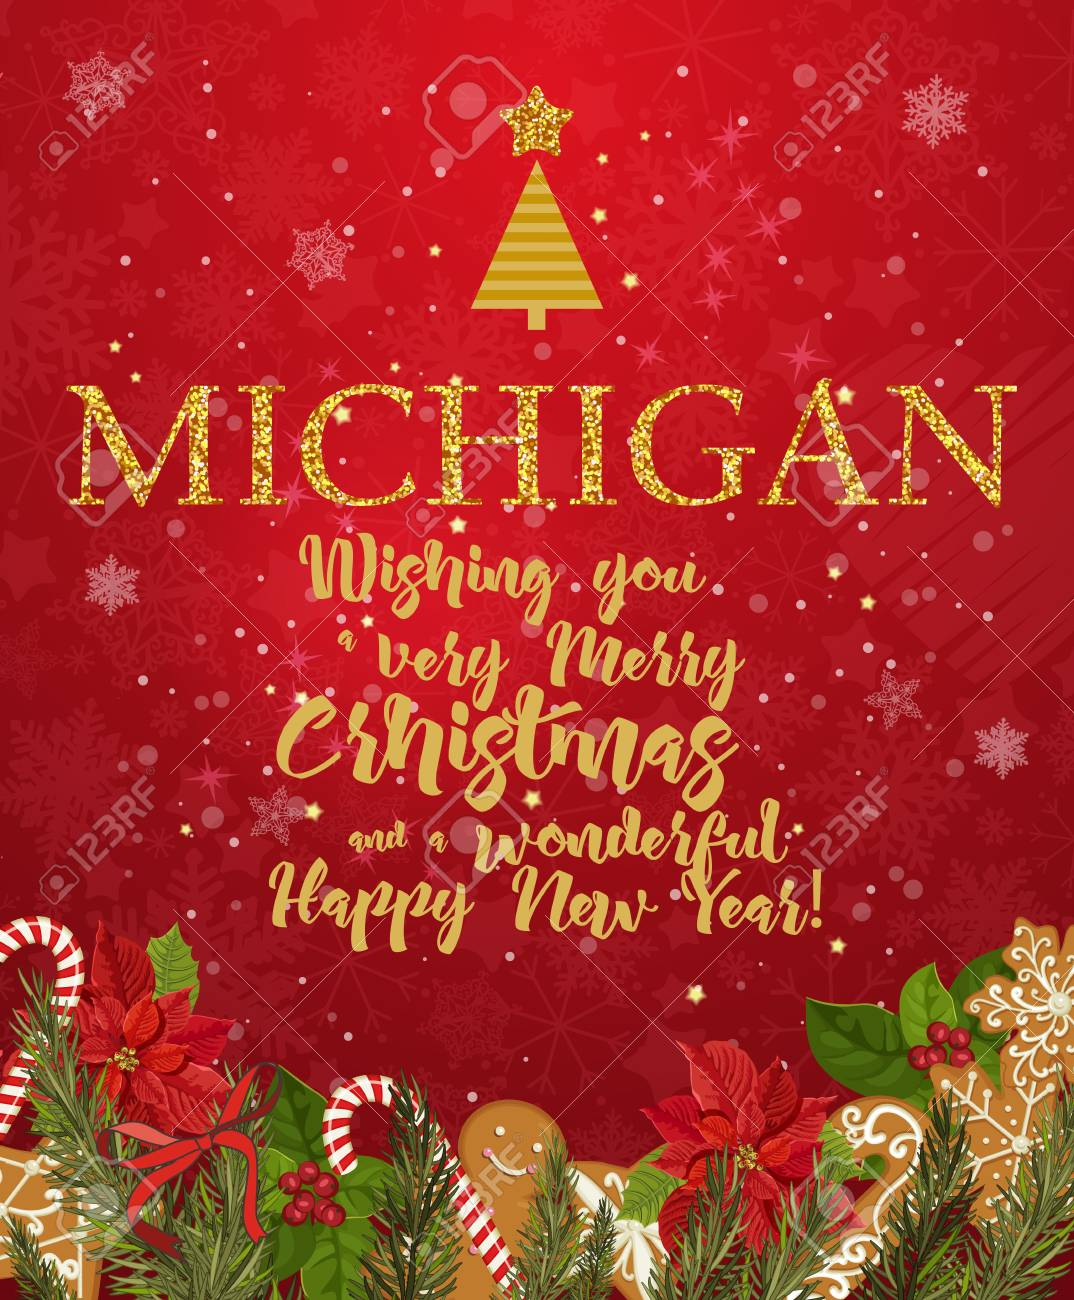 Michigan merry christmas and a happy new year greeting vector michigan merry christmas and a happy new year greeting vector card on red background with snowflakes m4hsunfo